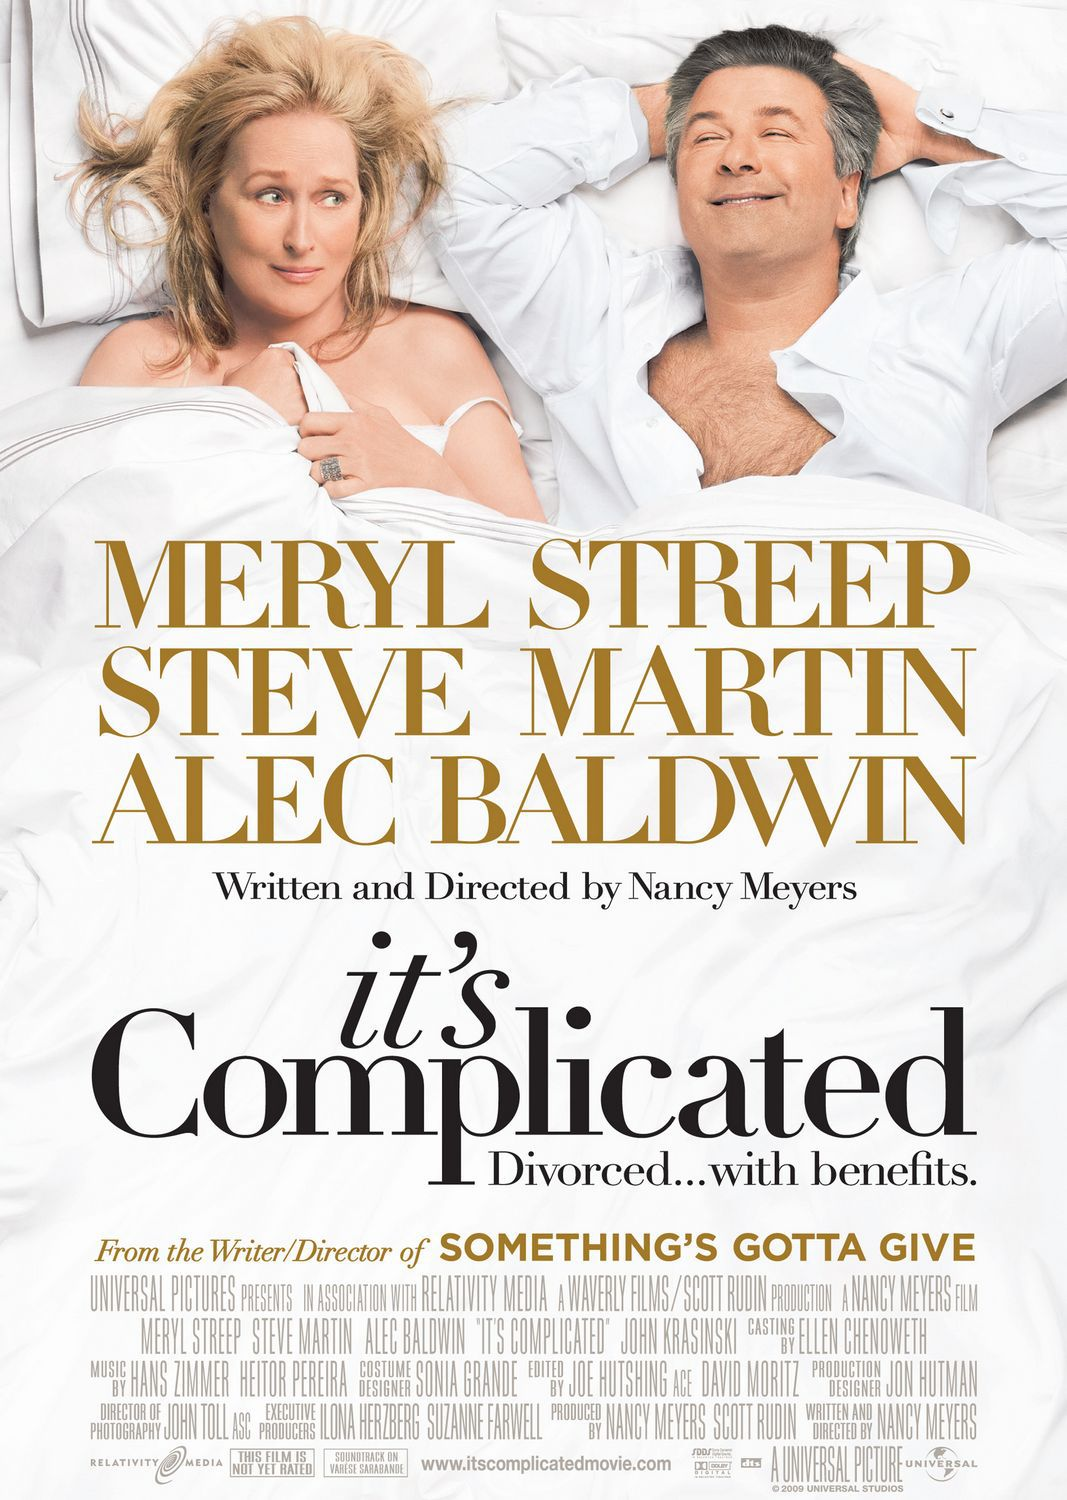 Its Complicated - E' Complicato - Meryl Streep - Steve Martin - Alec Baldwin (Divorced with benefits)